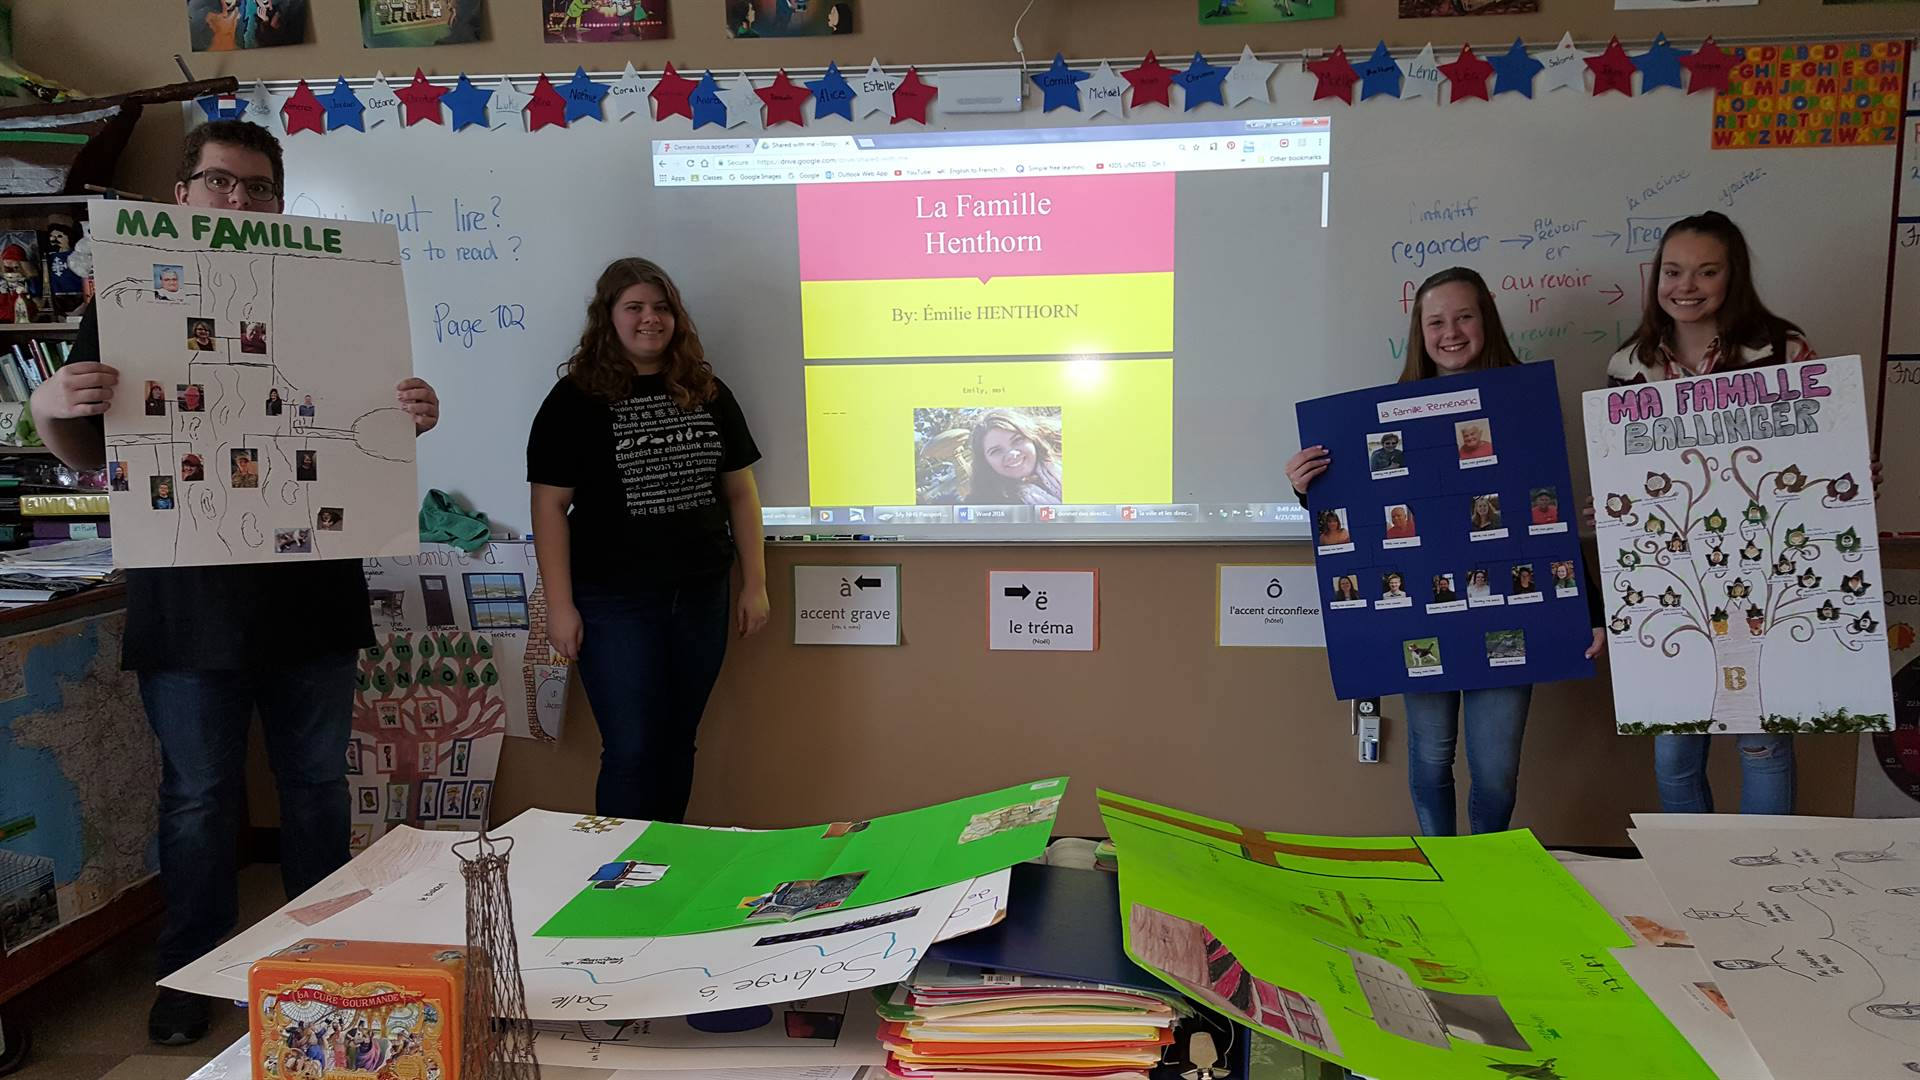 Madame Campensa's French class family tree project.